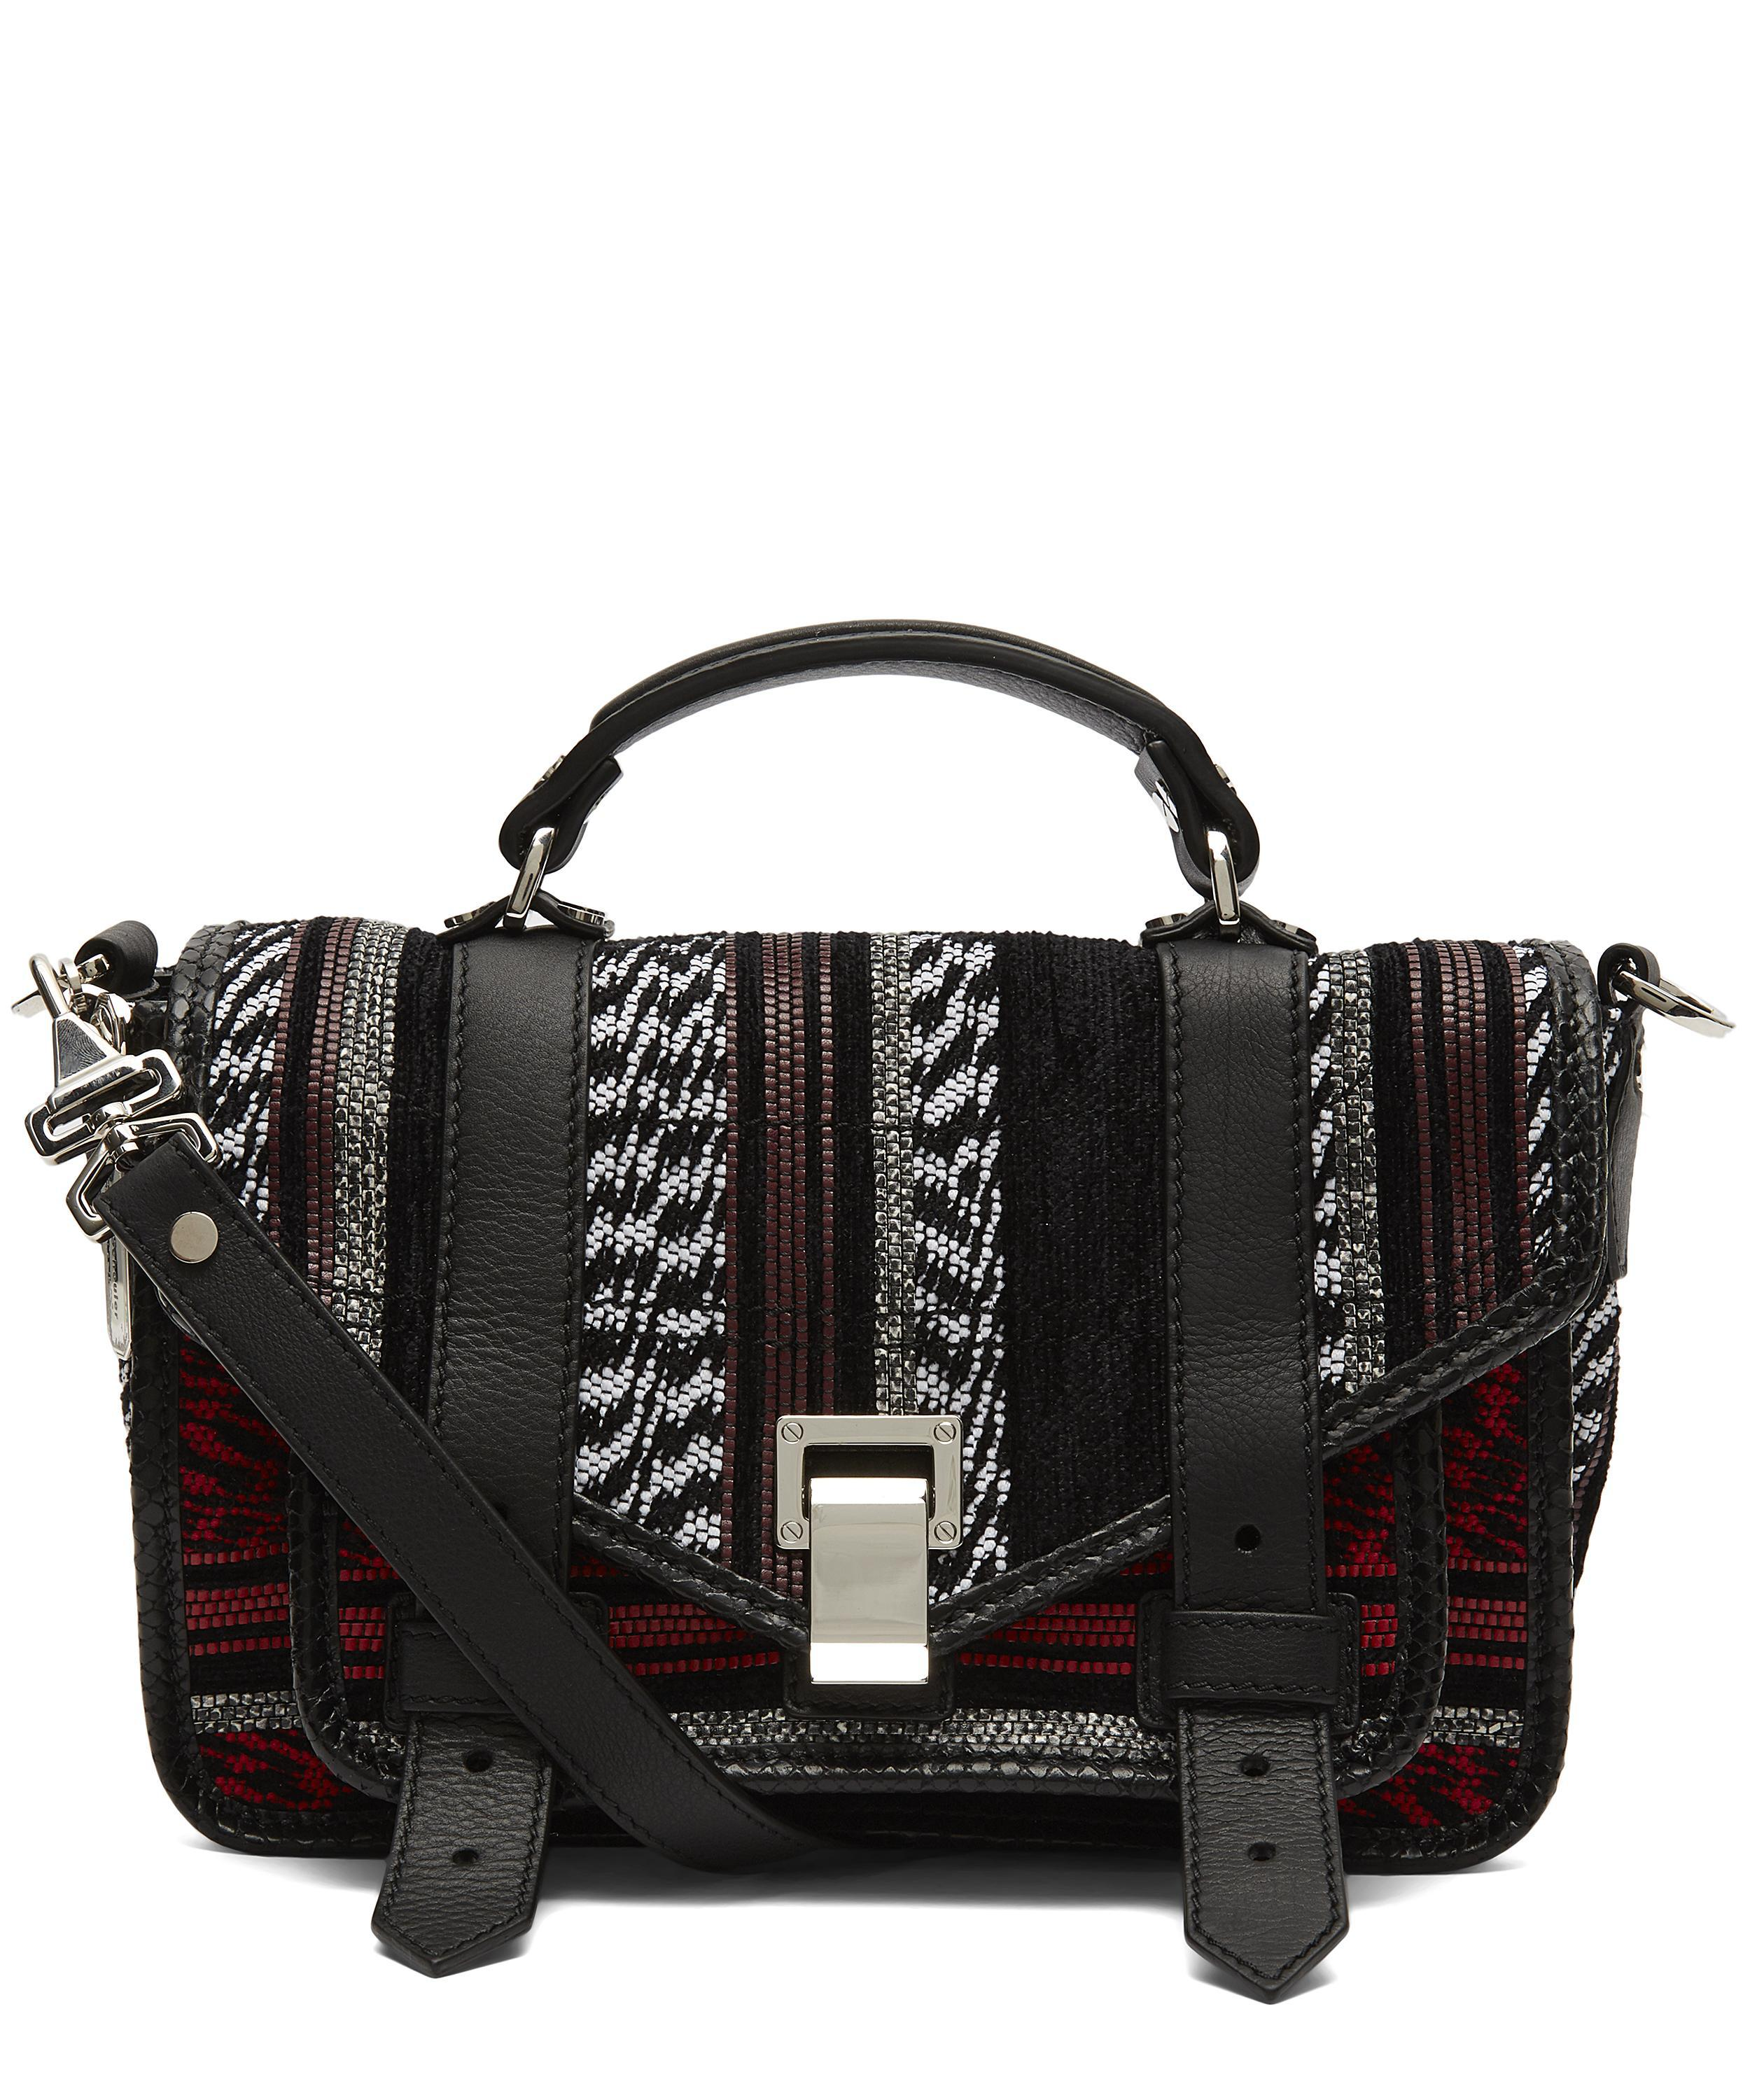 Proenza Schouler Ps1 Tiny Cross-body Bag in Black - Lyst e86914eee6caf